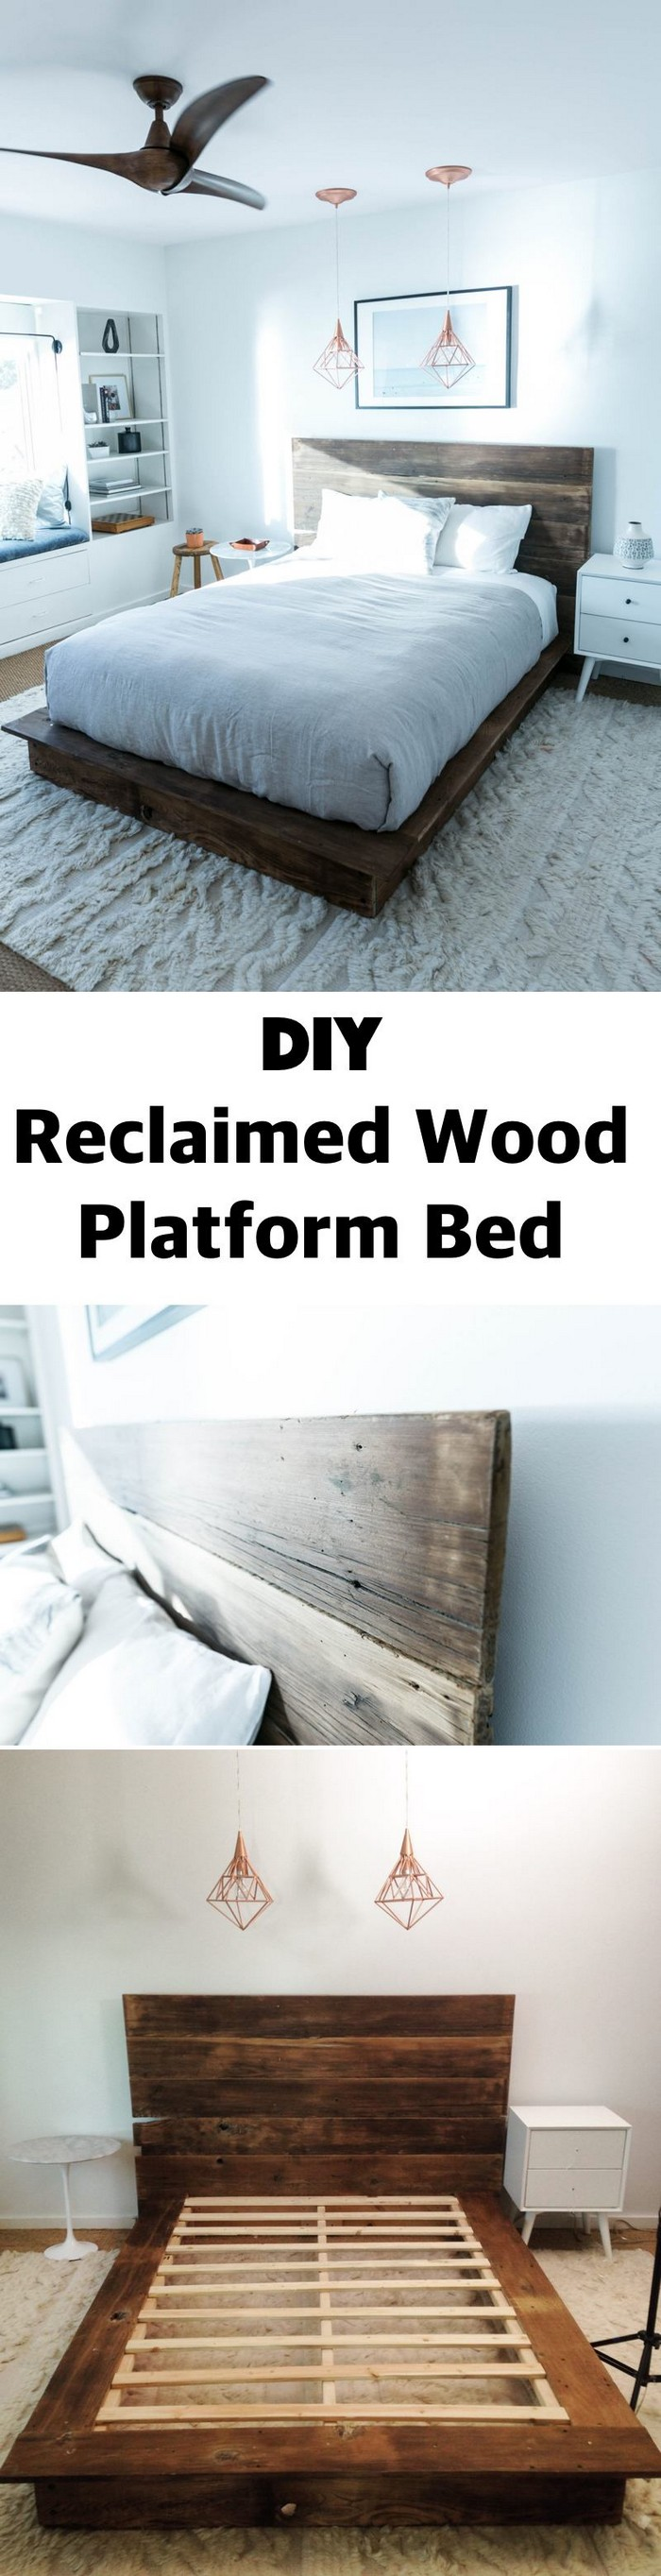 DIY Reclaimed Wood Platform Bed - diy bed frame - DIY Bed Plans -diy bed